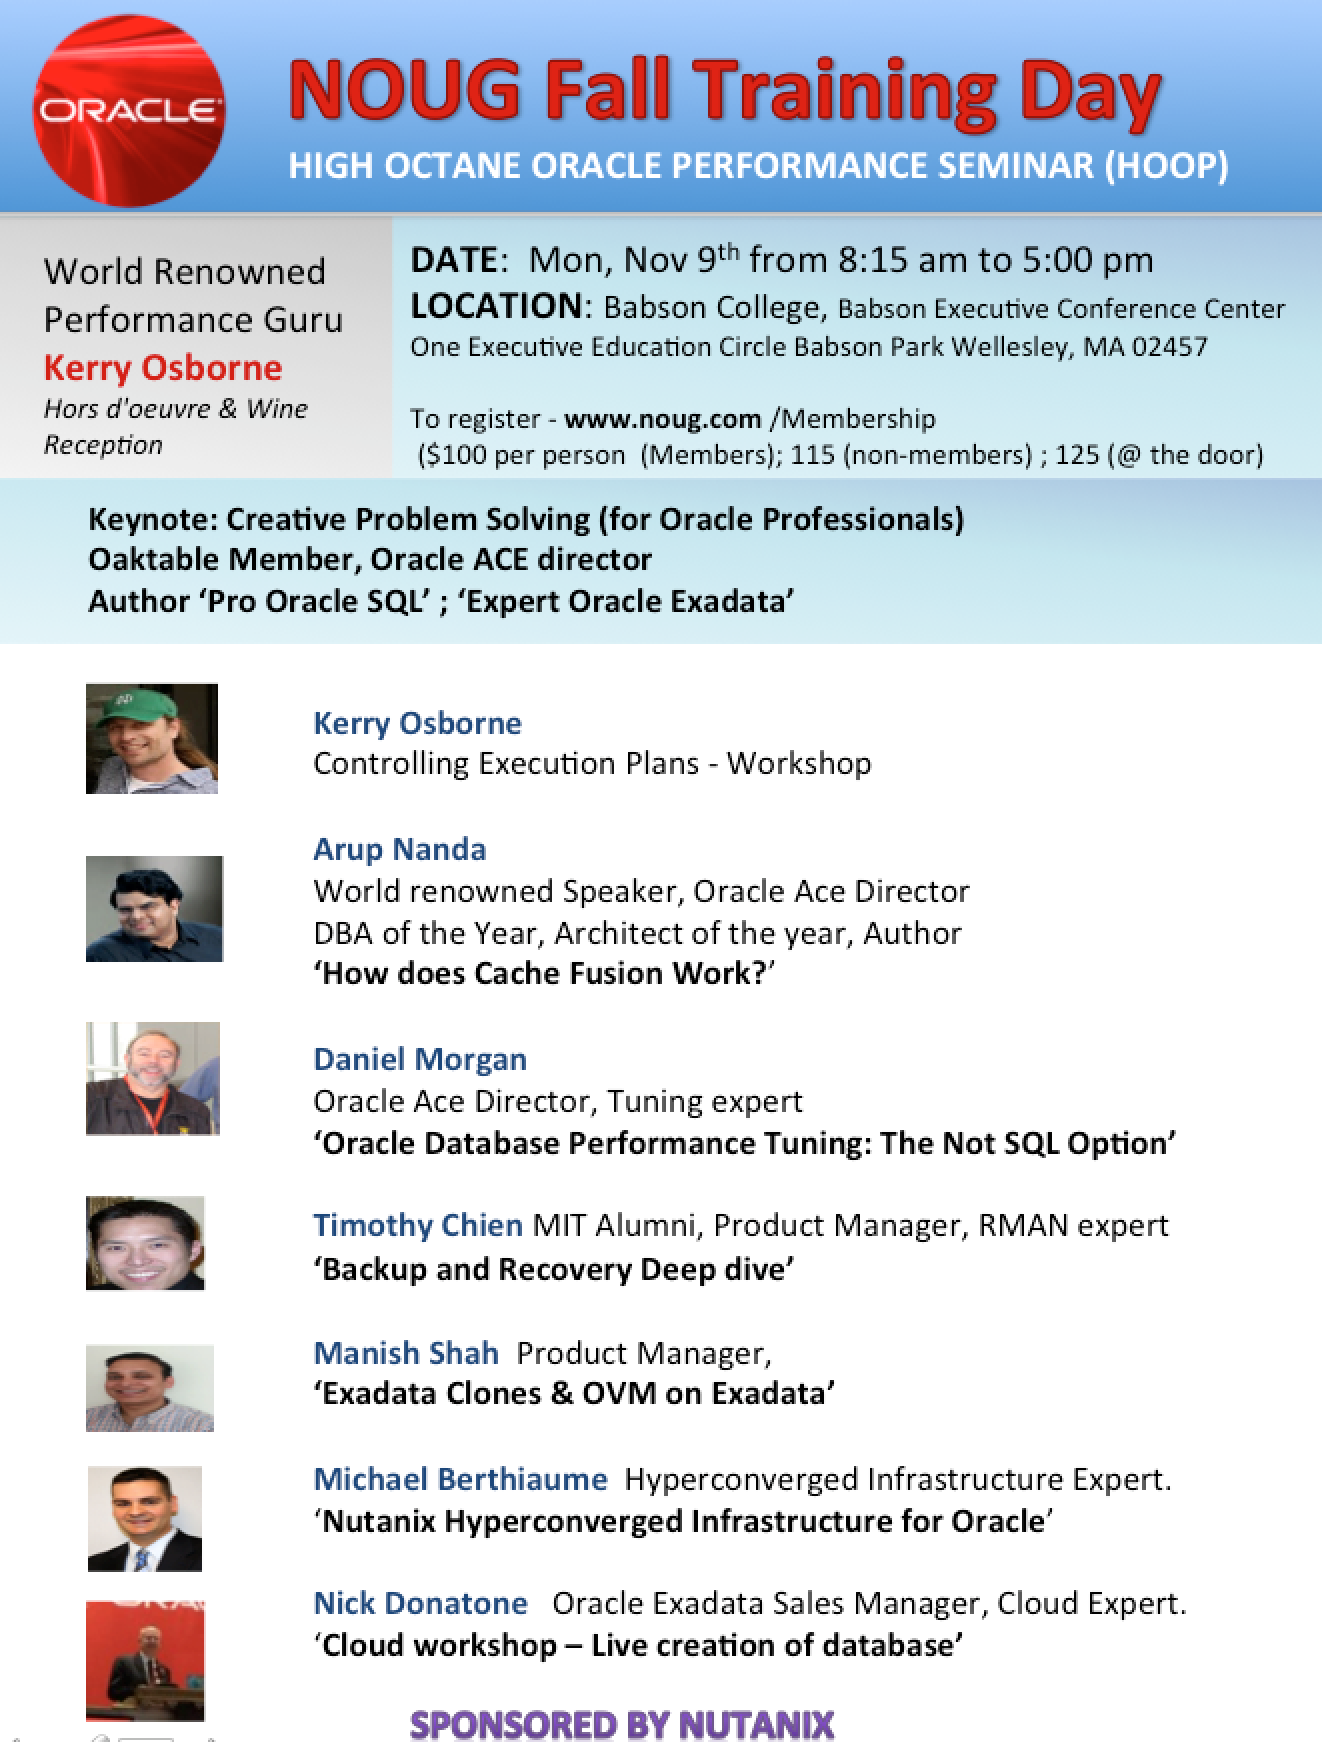 NOUG Fall Training Day